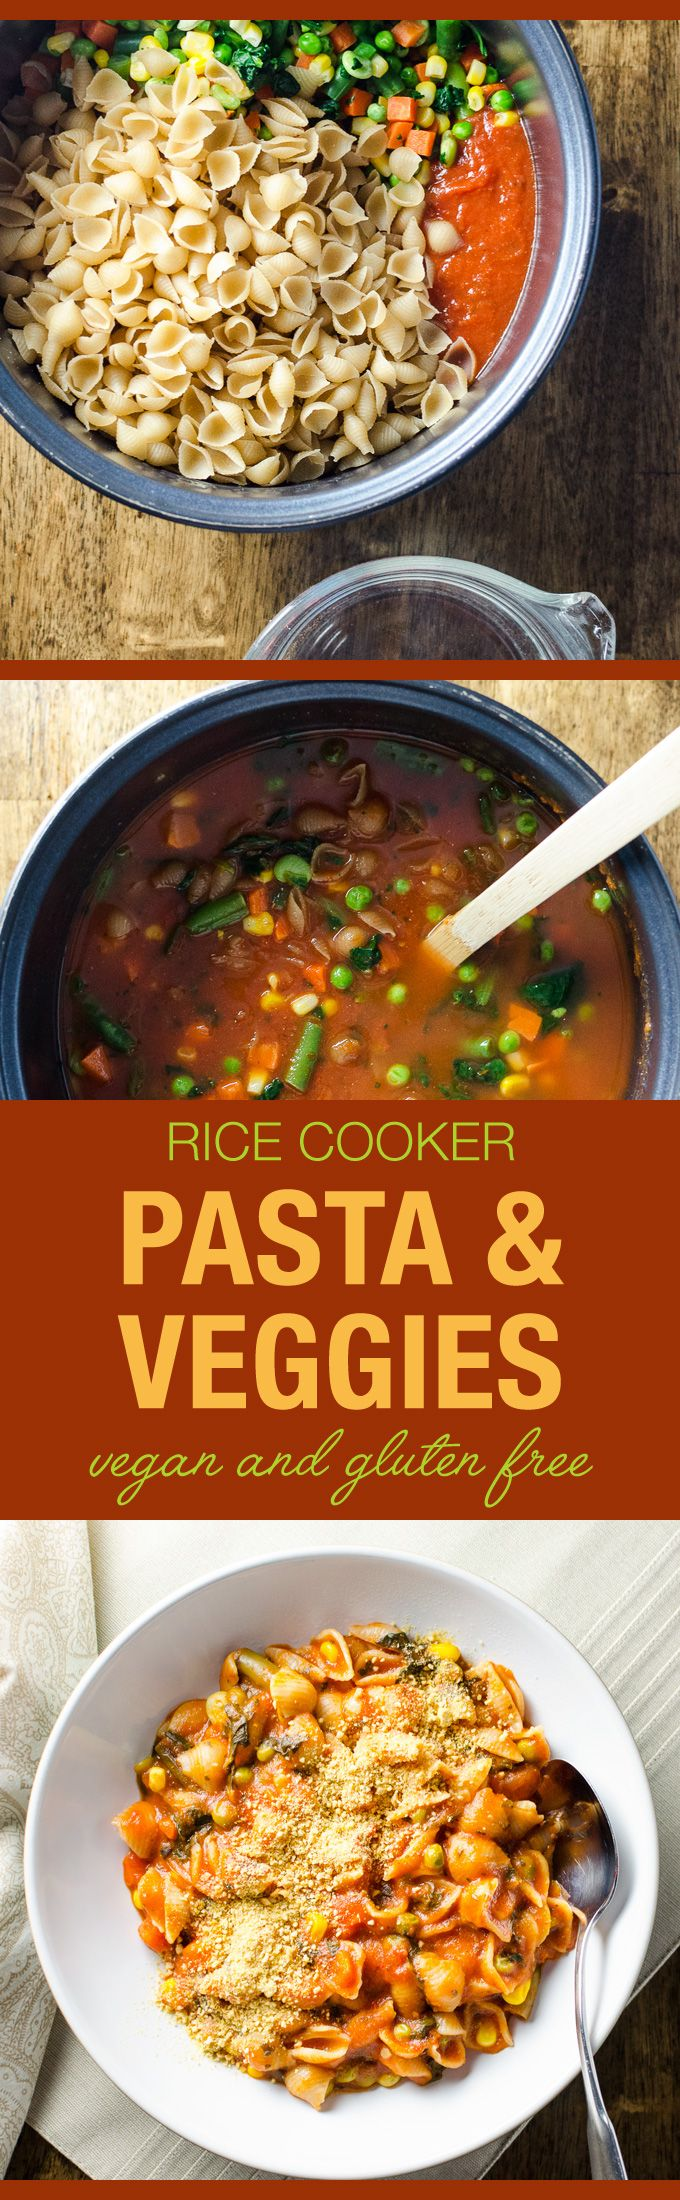 Rice Cooker Pasta with Veggies - an easy main meal with simple vegan and gluten free ingredients | VeggiePrimer.com